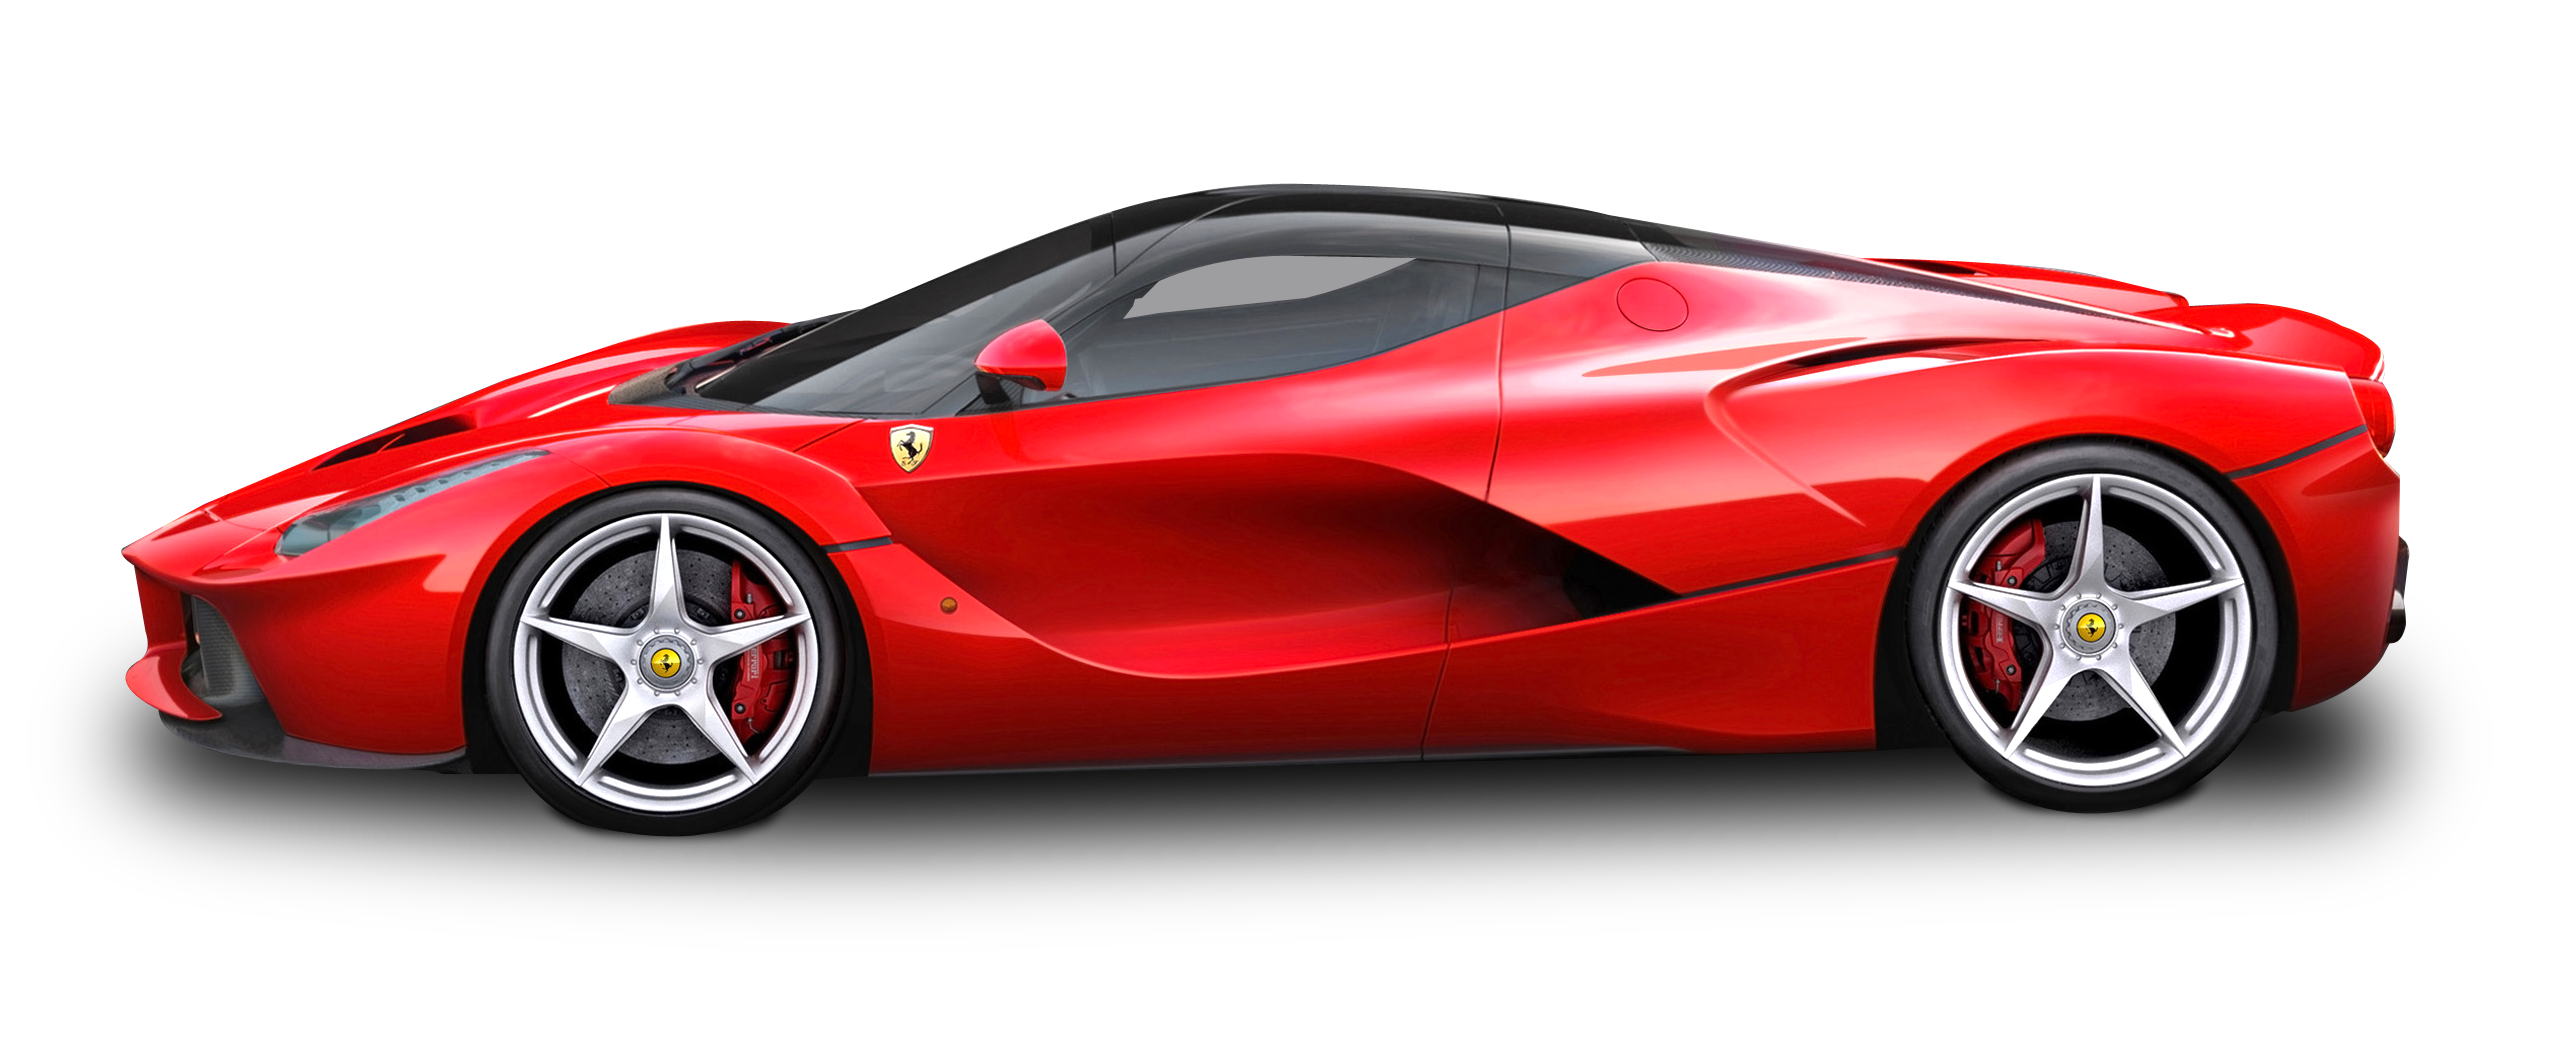 Red Sports Car Ferrari Png 39069 Free Icons And Png